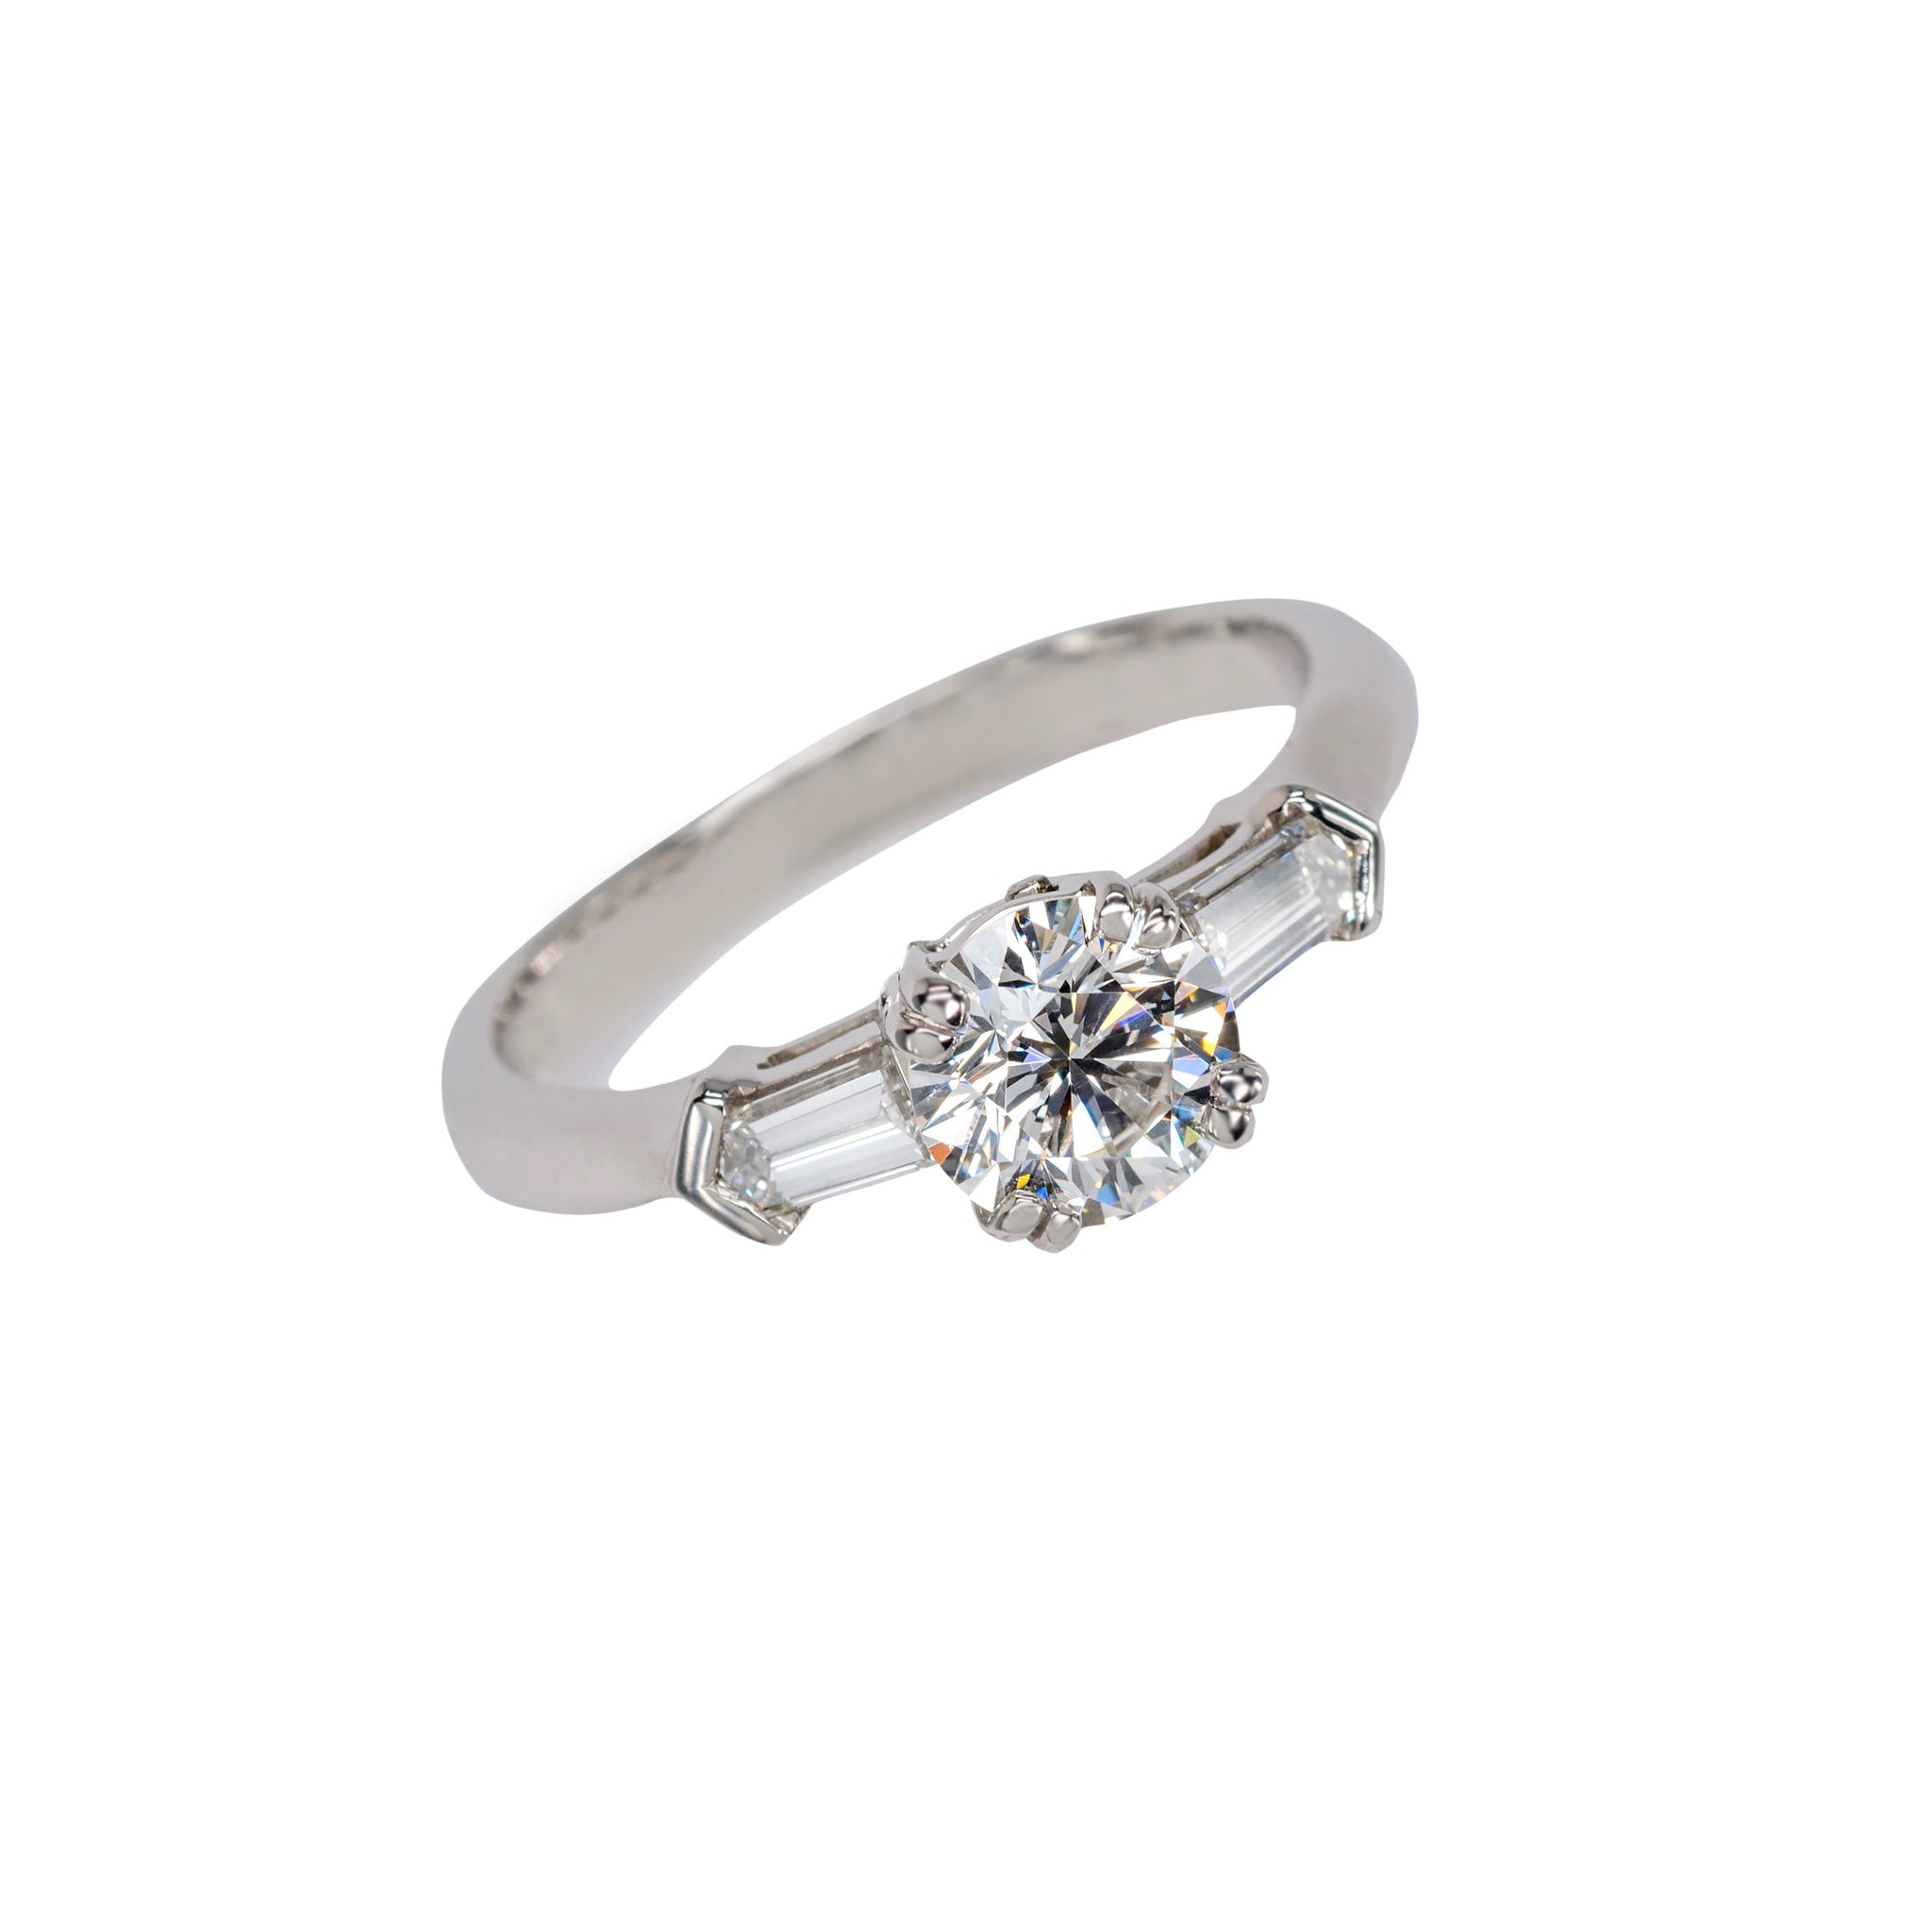 0.91 Carat Diamond Ring